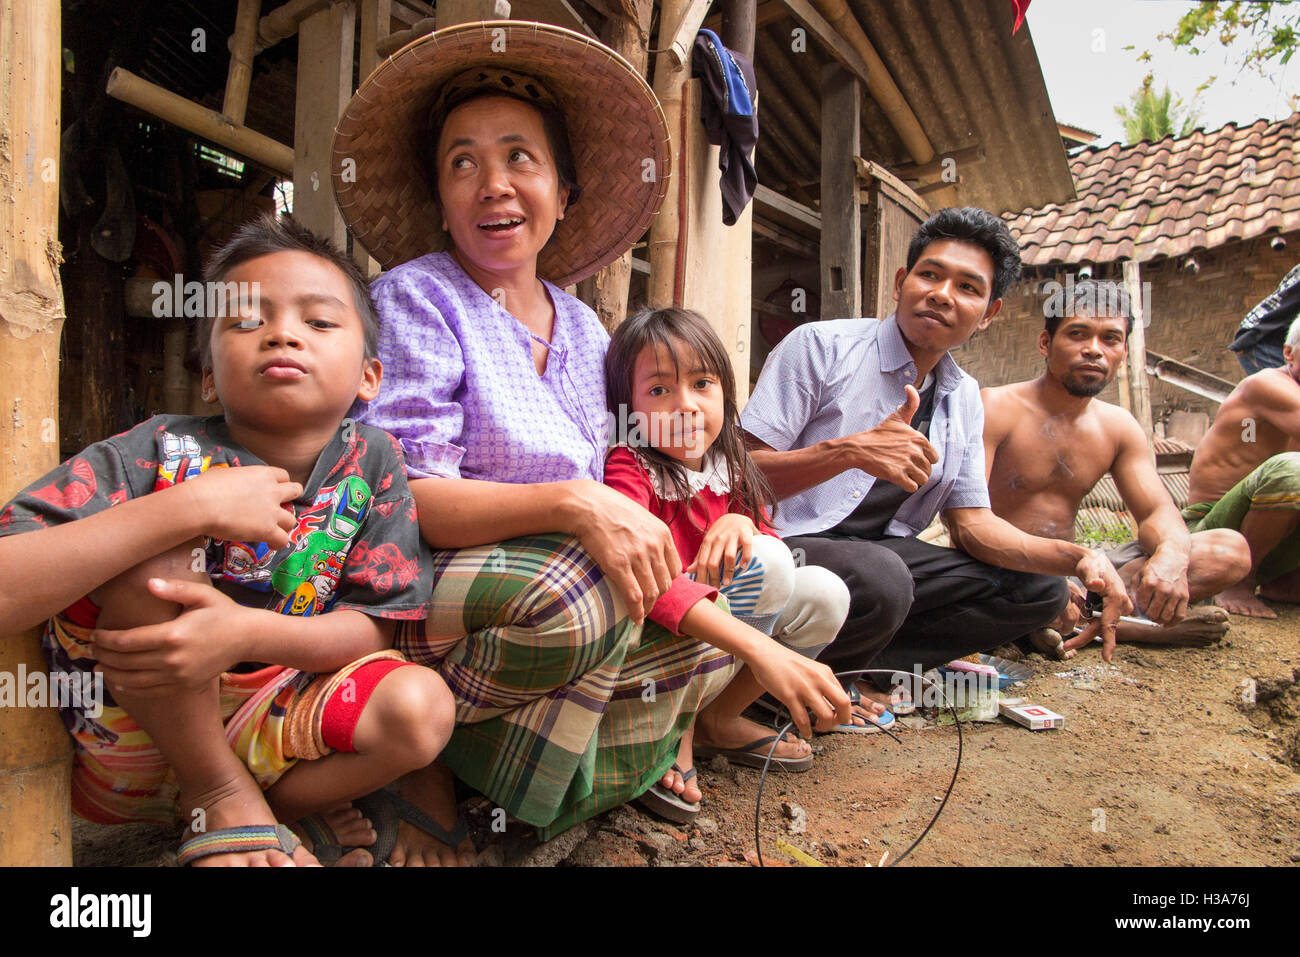 Indonesia, Lombok, Mantang, rural village community in family compound - Stock Image